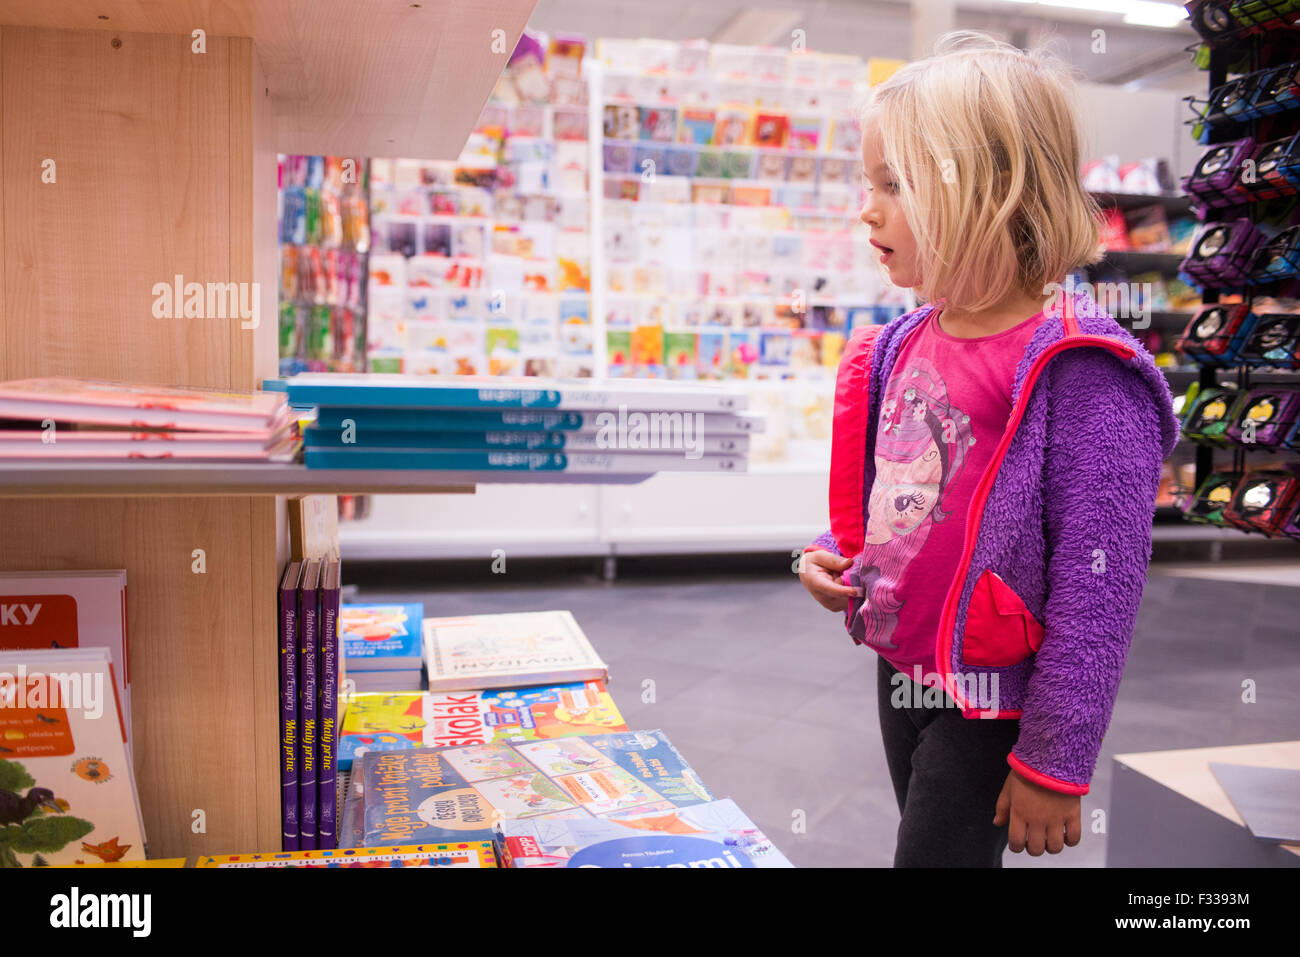 shopping for school supplies in a supermarket, educational stationery department - Stock Image